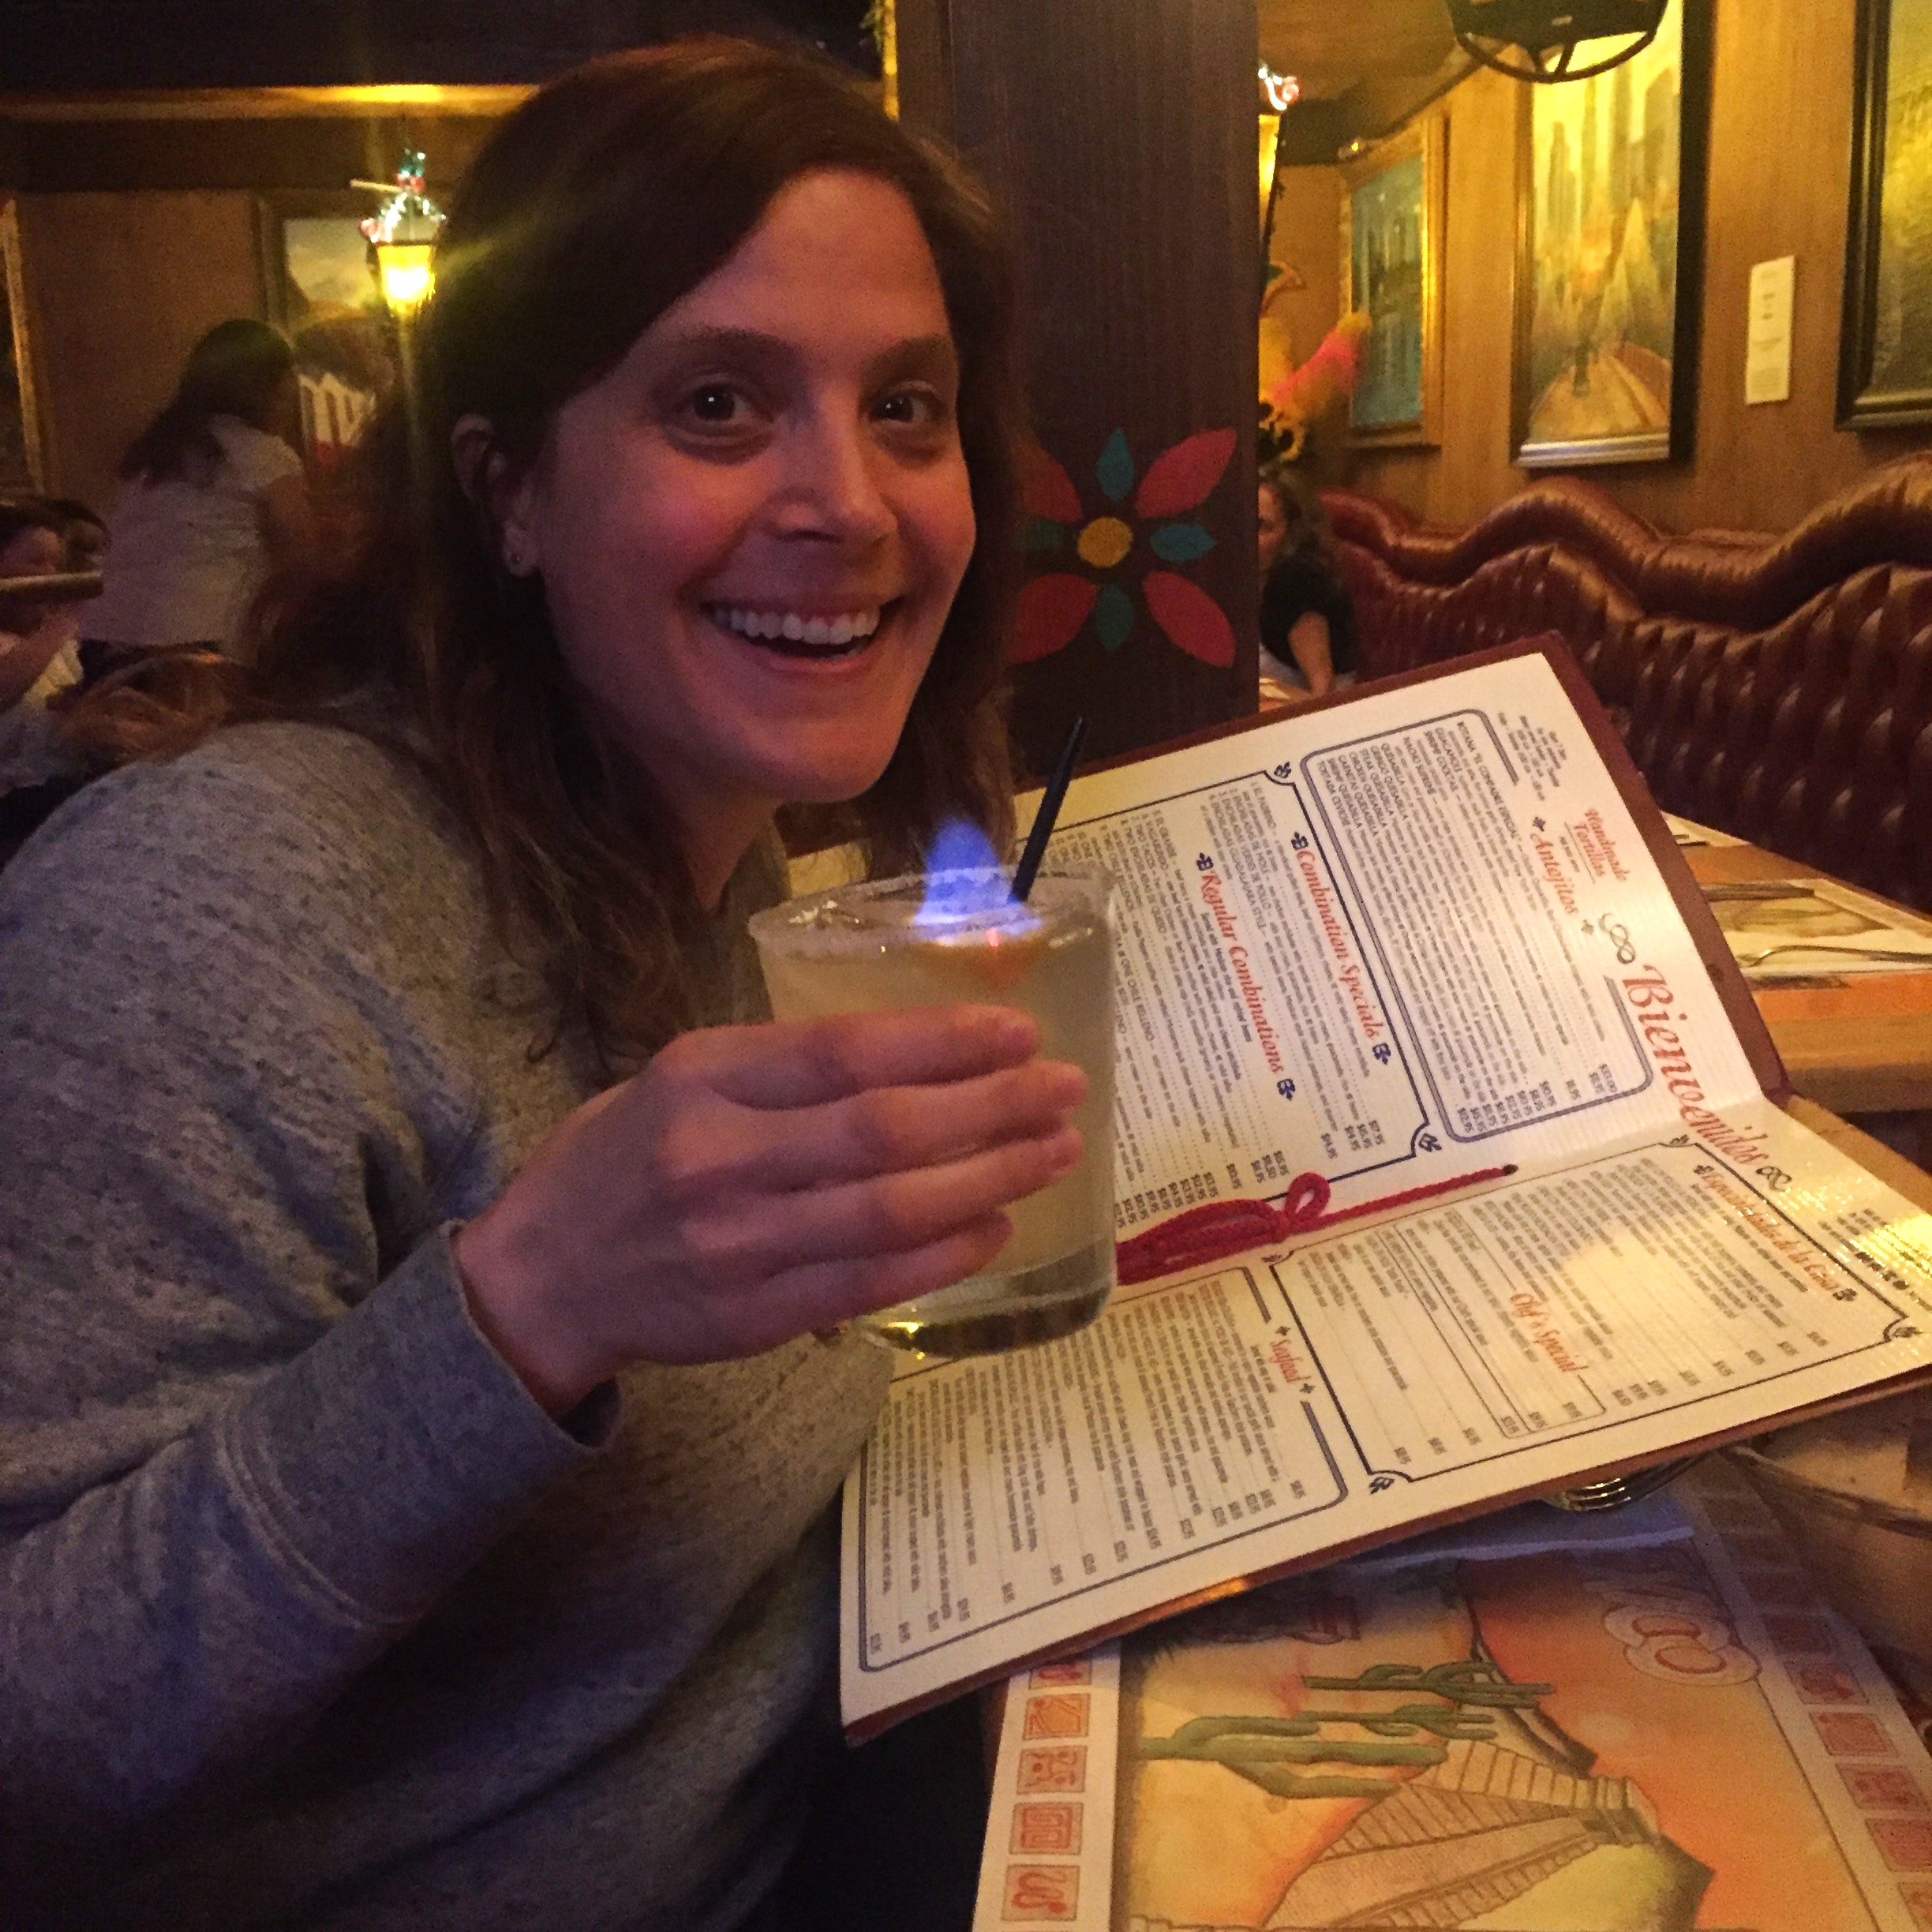 Heather and a flaming margarita